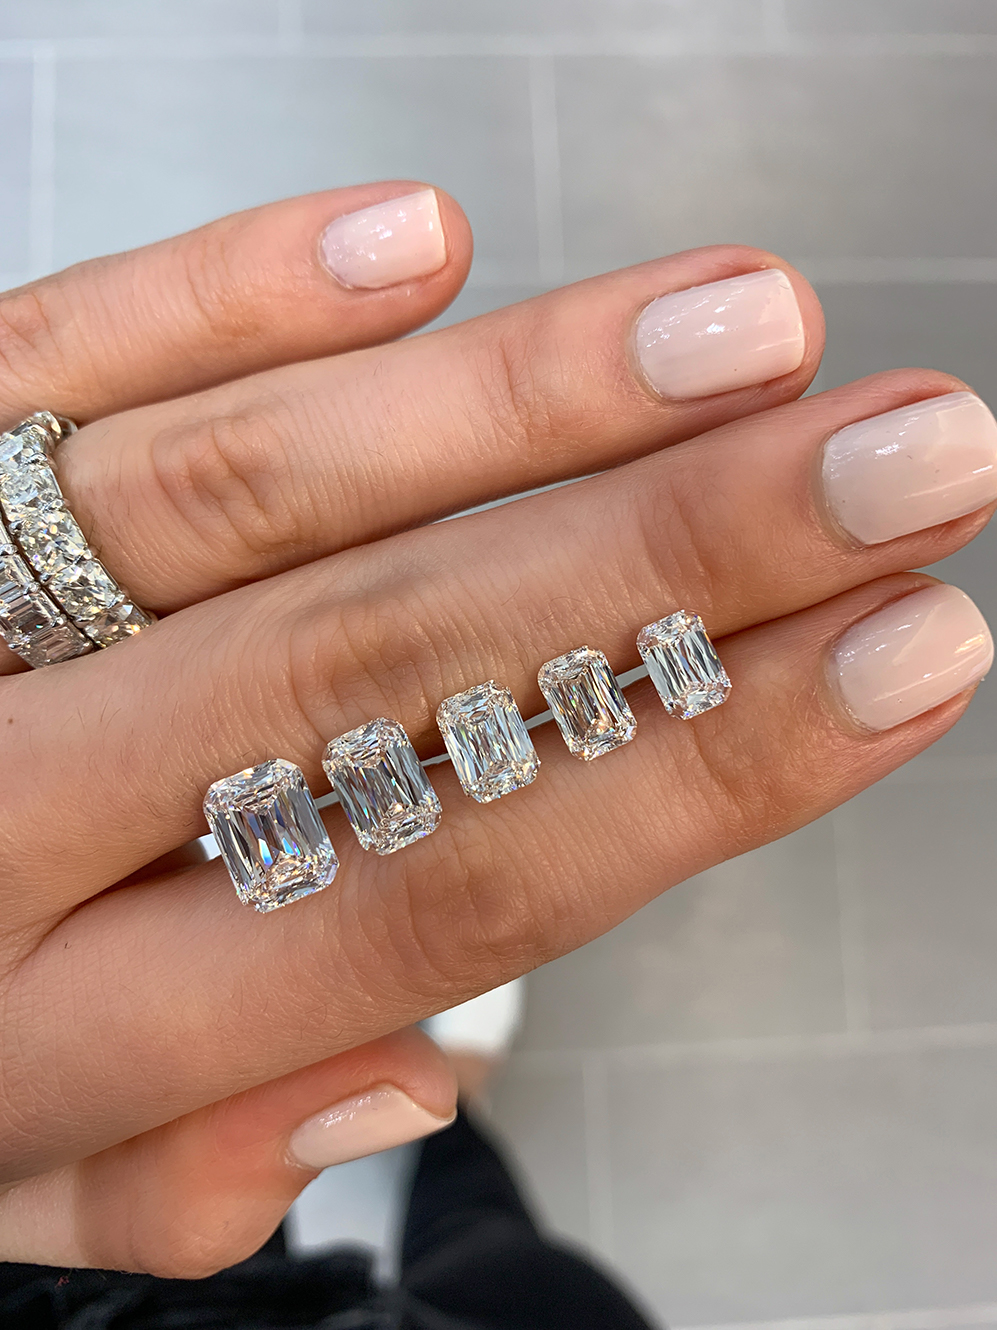 Top 5 Engagement Ring Trend Predictions for 2020